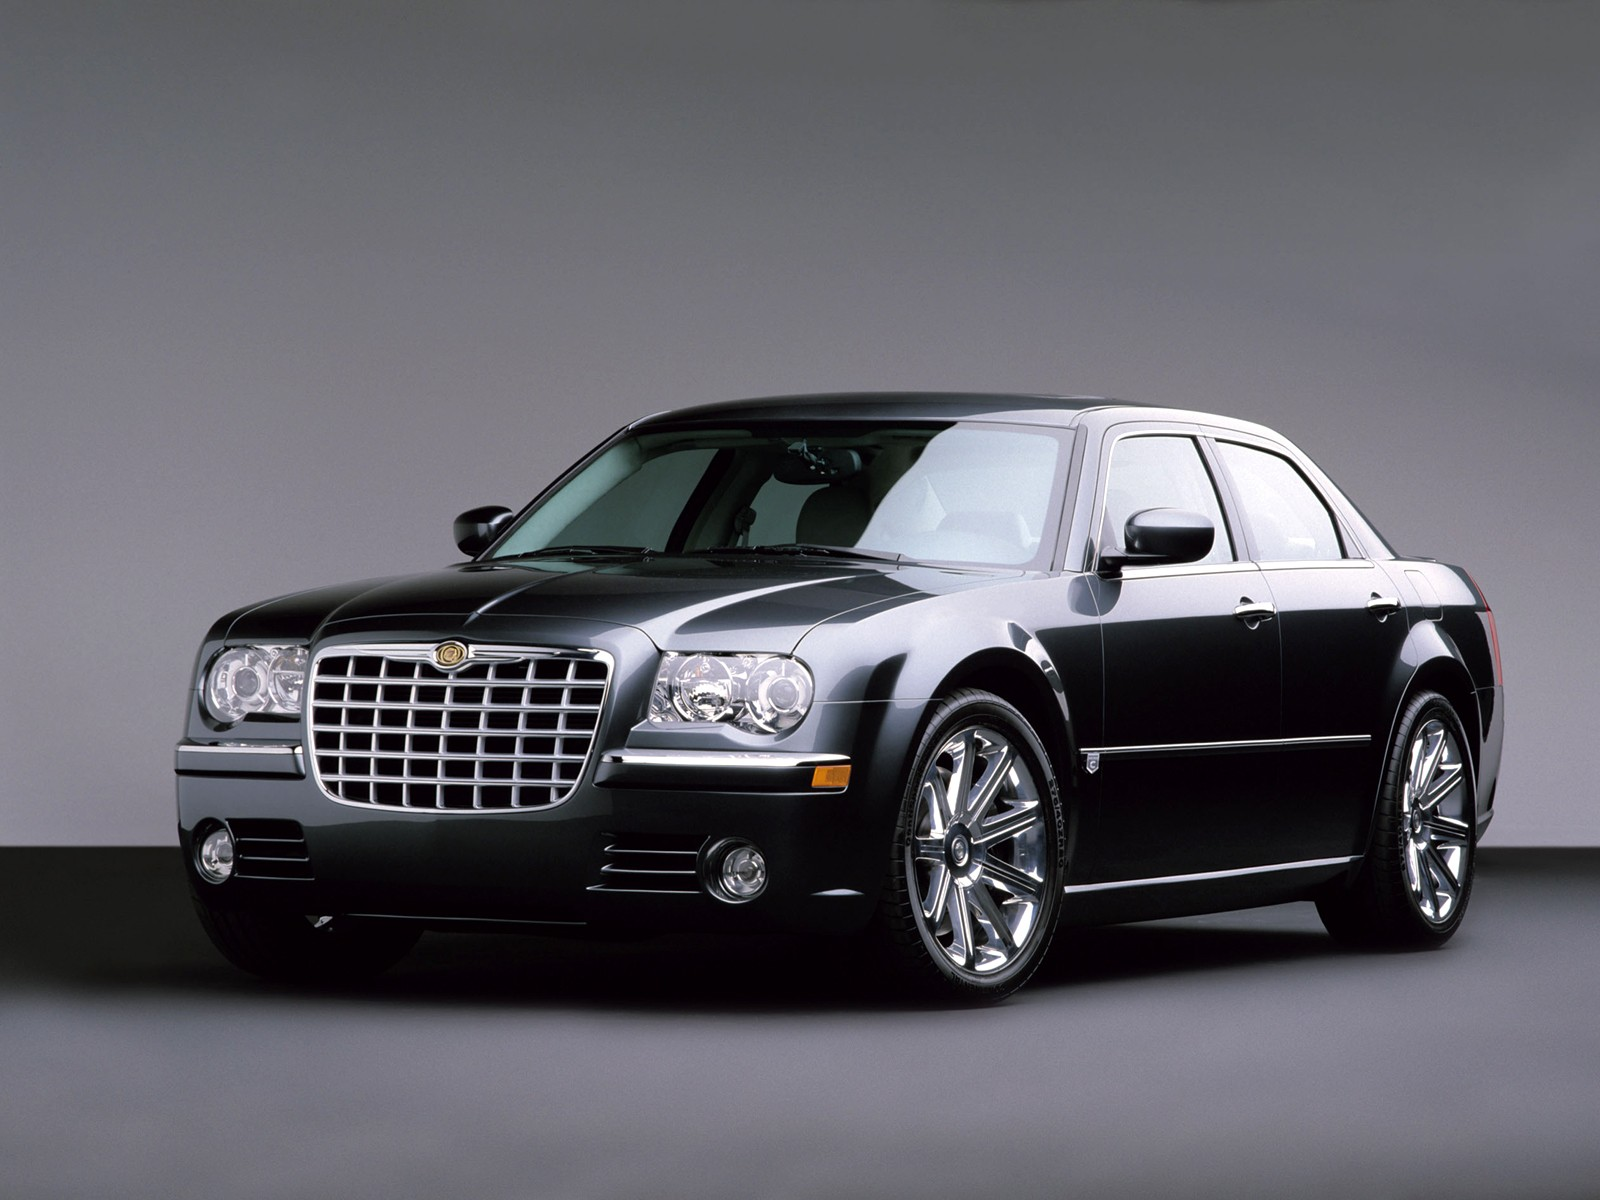 beautiful cars chrysler 300. Black Bedroom Furniture Sets. Home Design Ideas